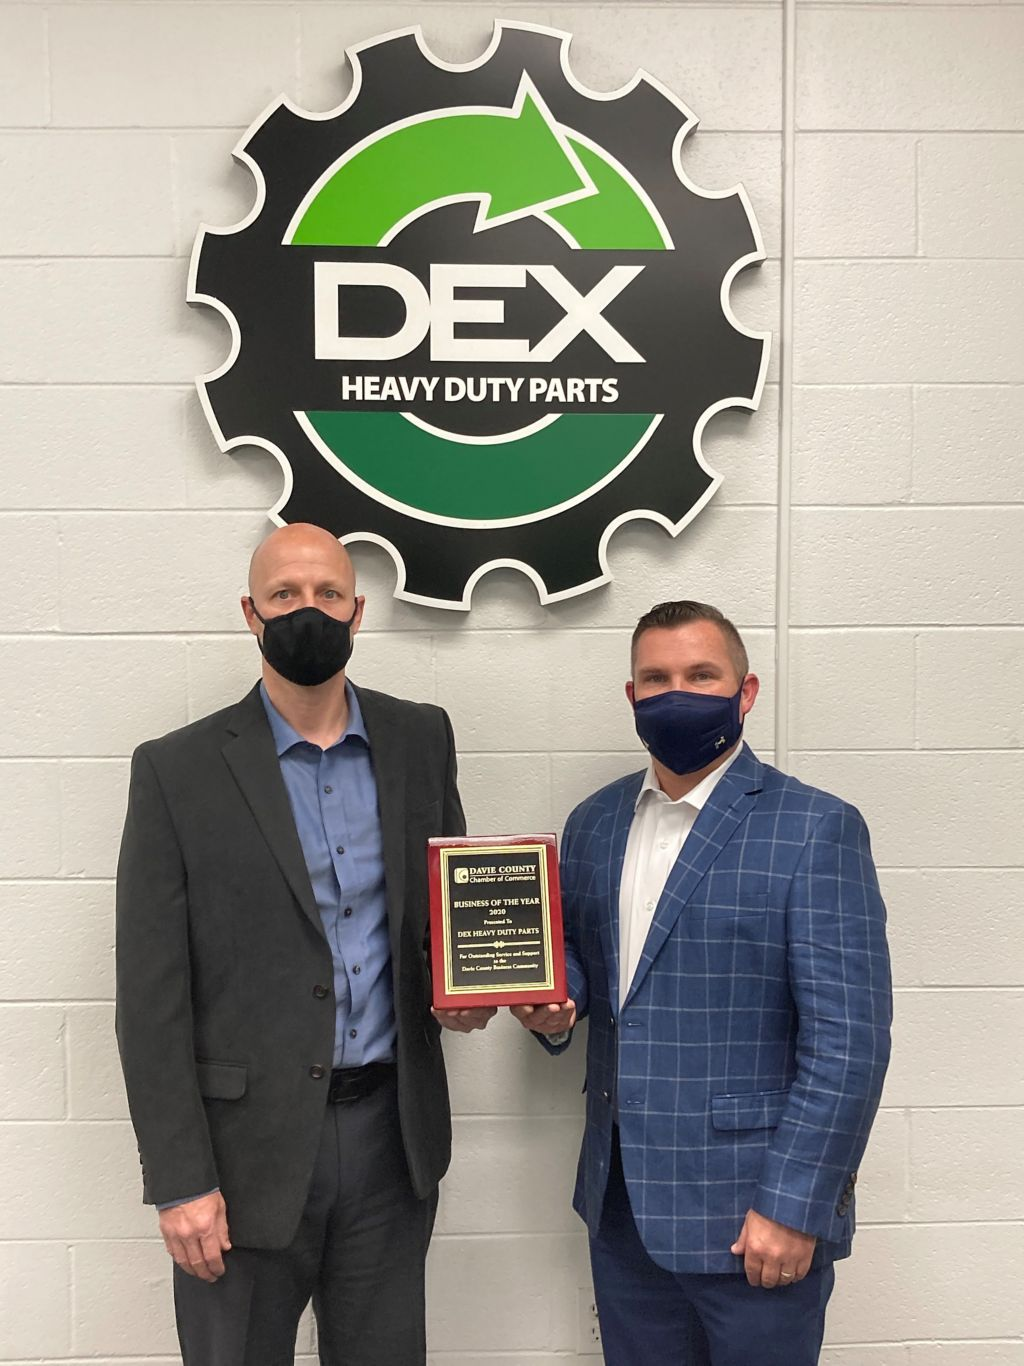 DEX Wins 2020 Business of the Year Award from the Davie County Chamber of Commerce